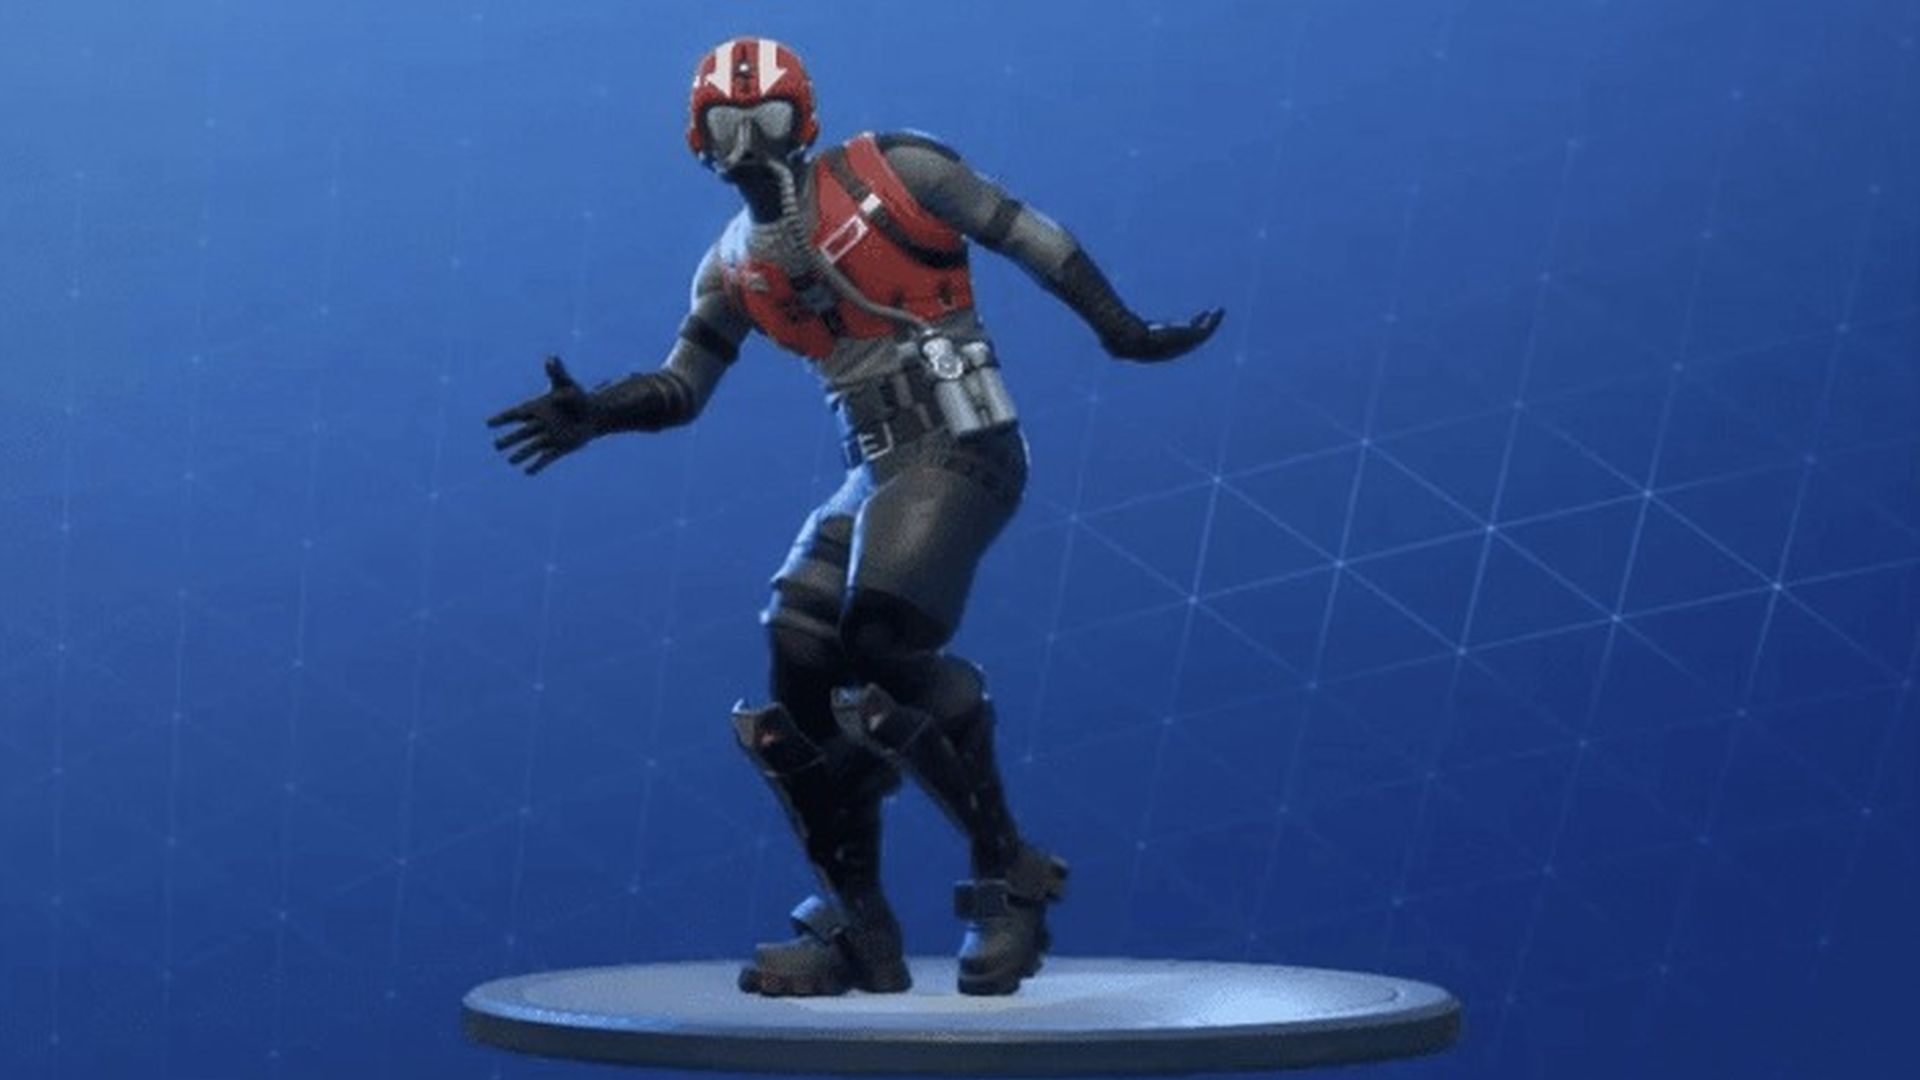 Epic Says 2 Millyu0027s Fortnite Lawsuit Is U201cat Odds With Free Speechu201d |  PCGamesN